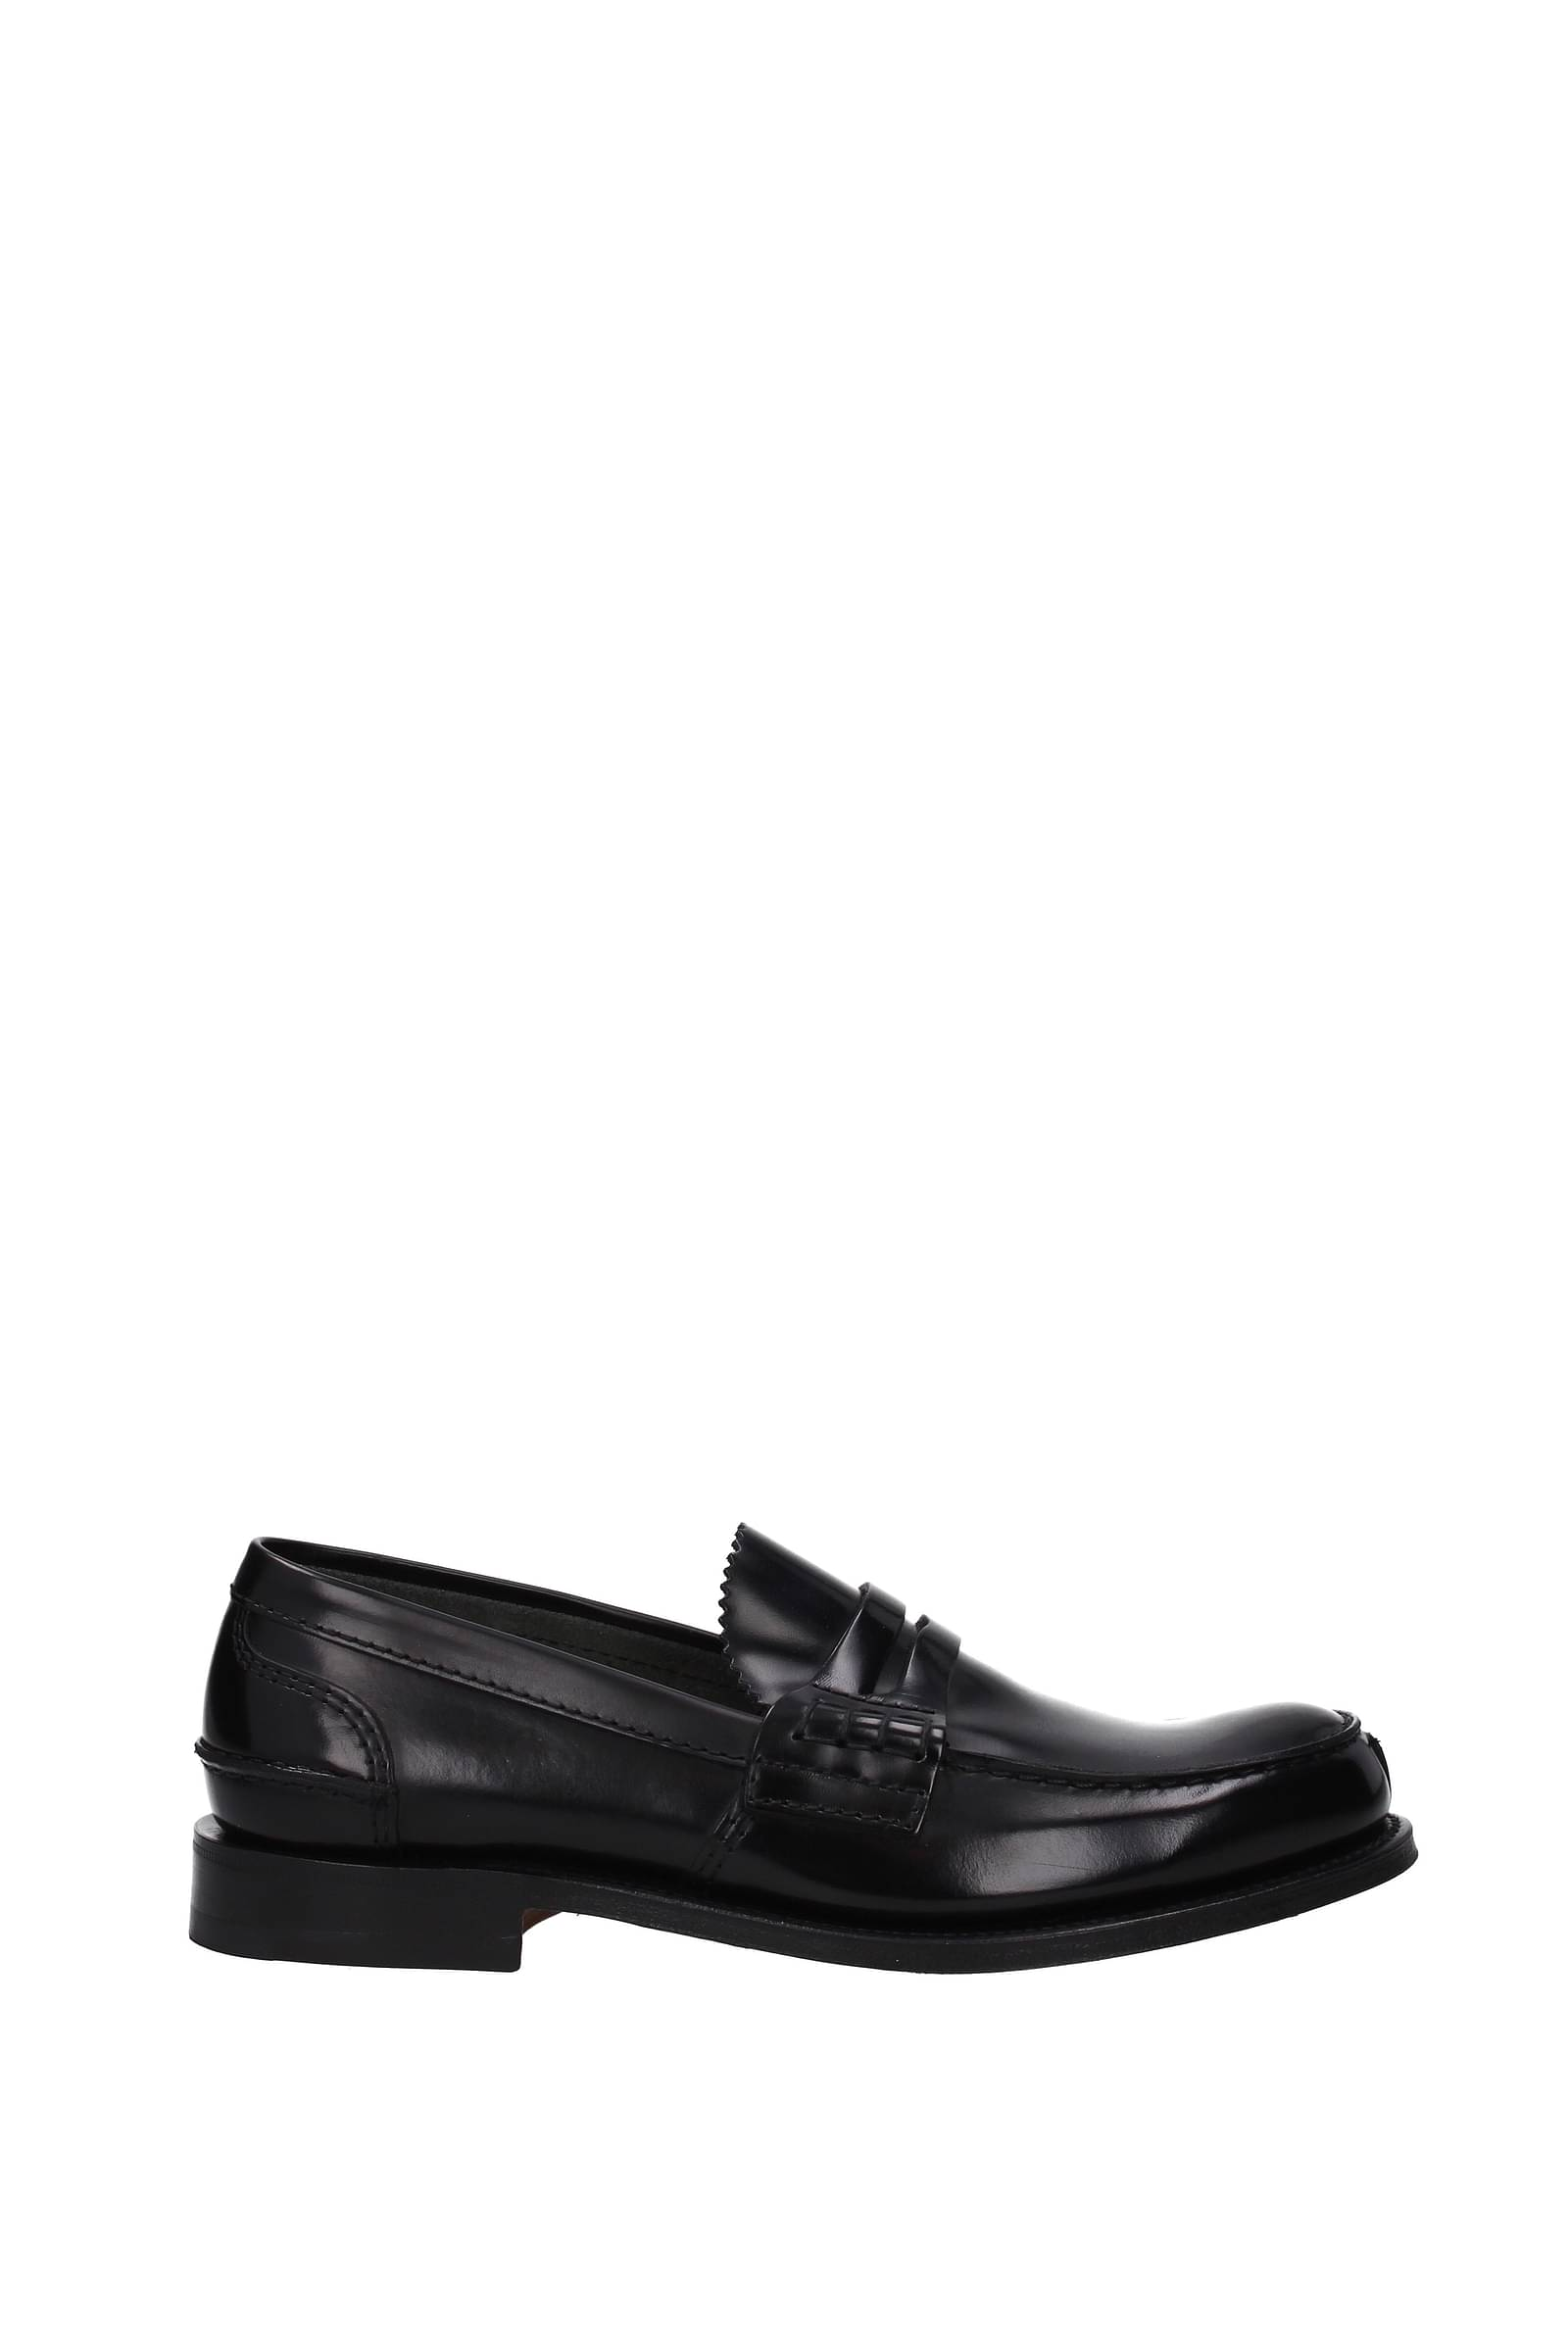 Loafers-Church-039-s-Man-Leather-TUNBRIDGE thumbnail 7